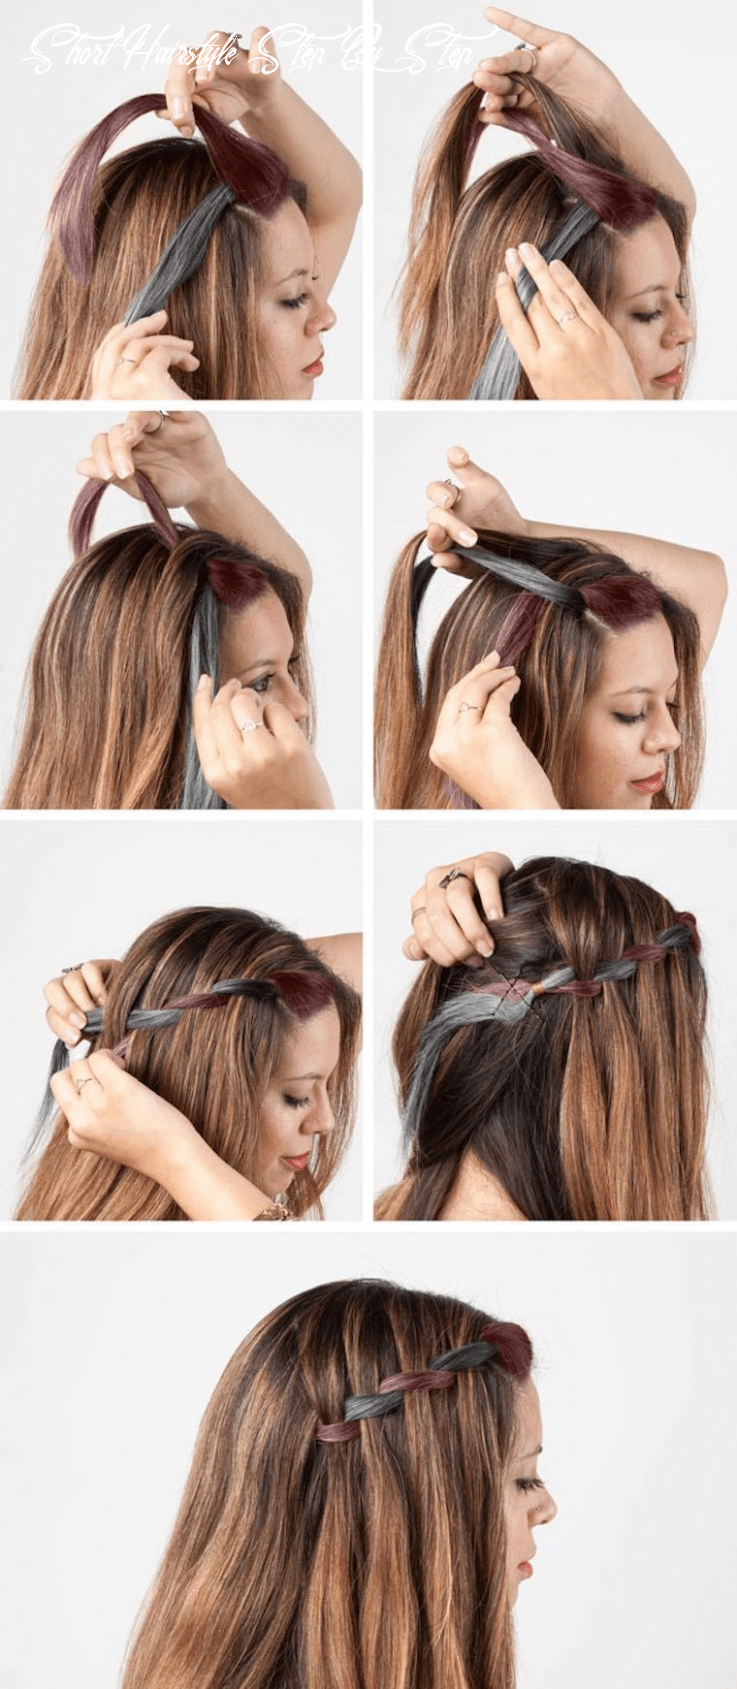 12 diy stunning easy hairstyles tutorials back to school step by